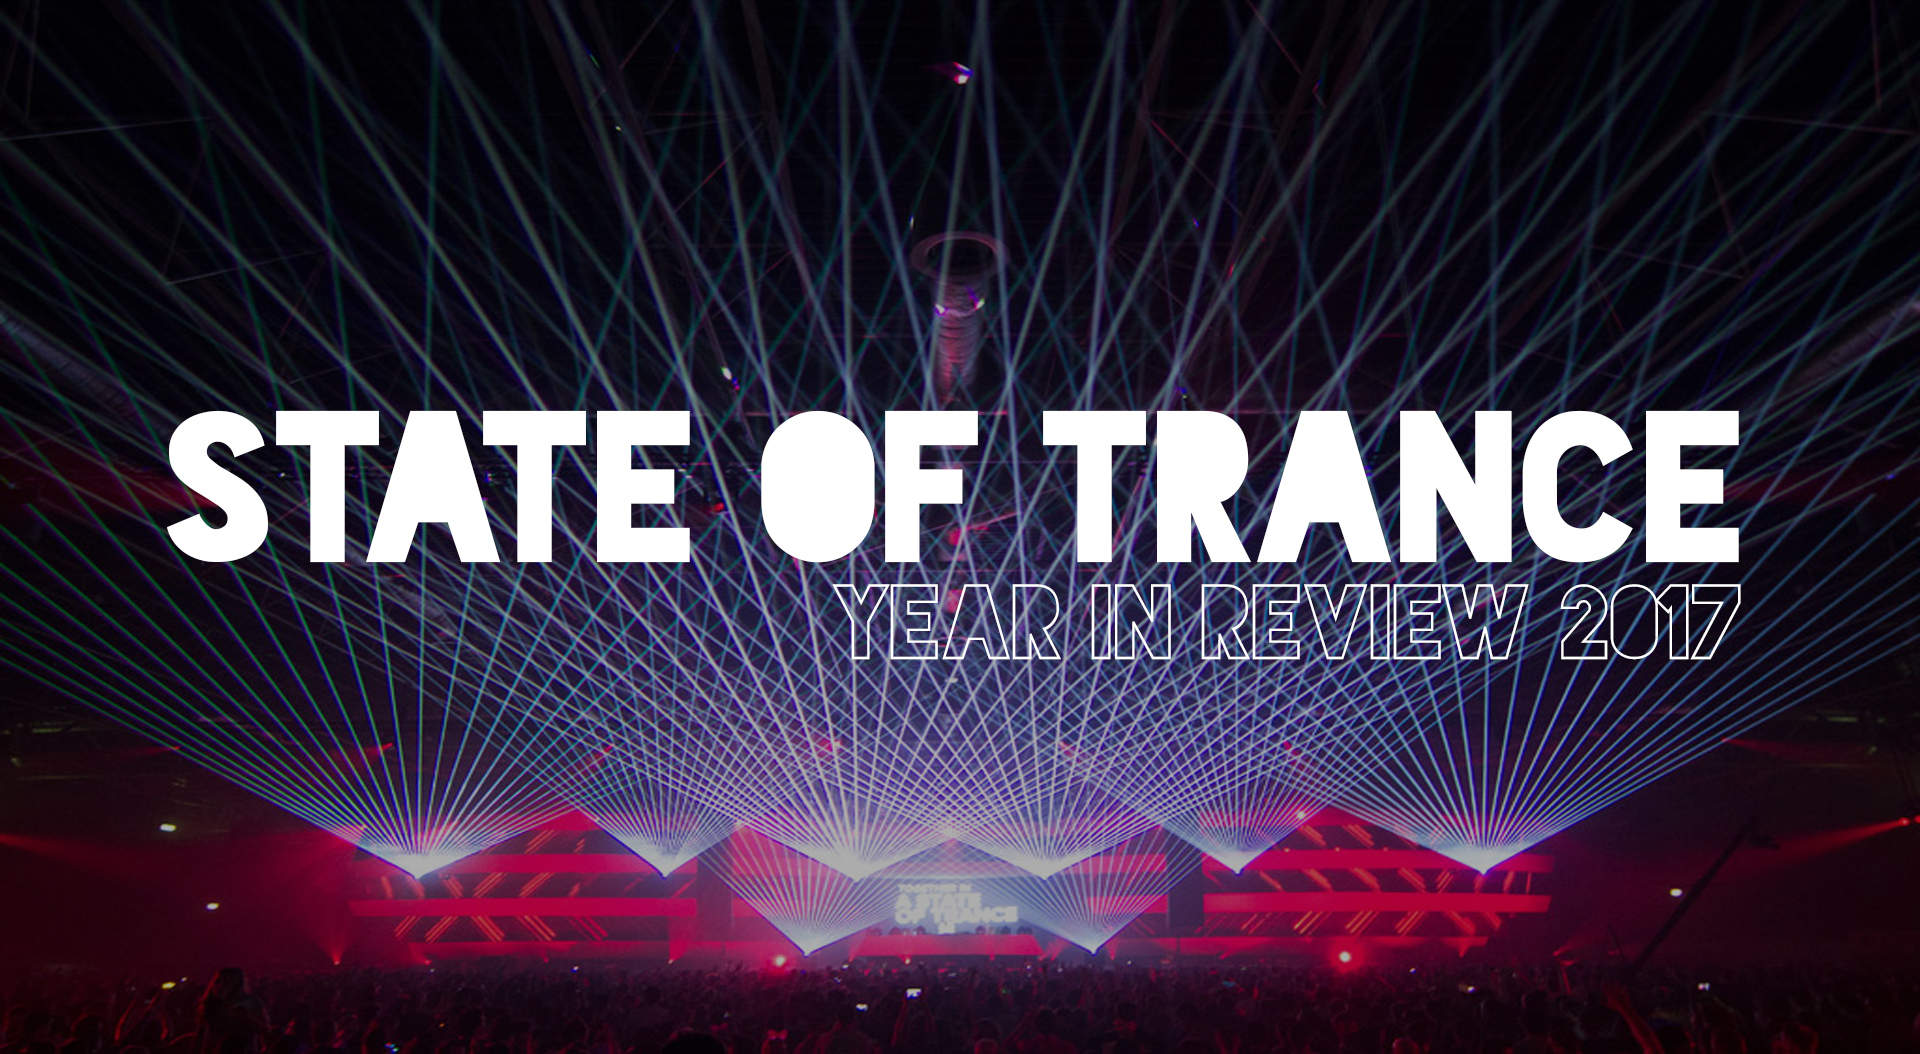 [PLAYLIST] 2017 End Of Year Review: A Year In Trance